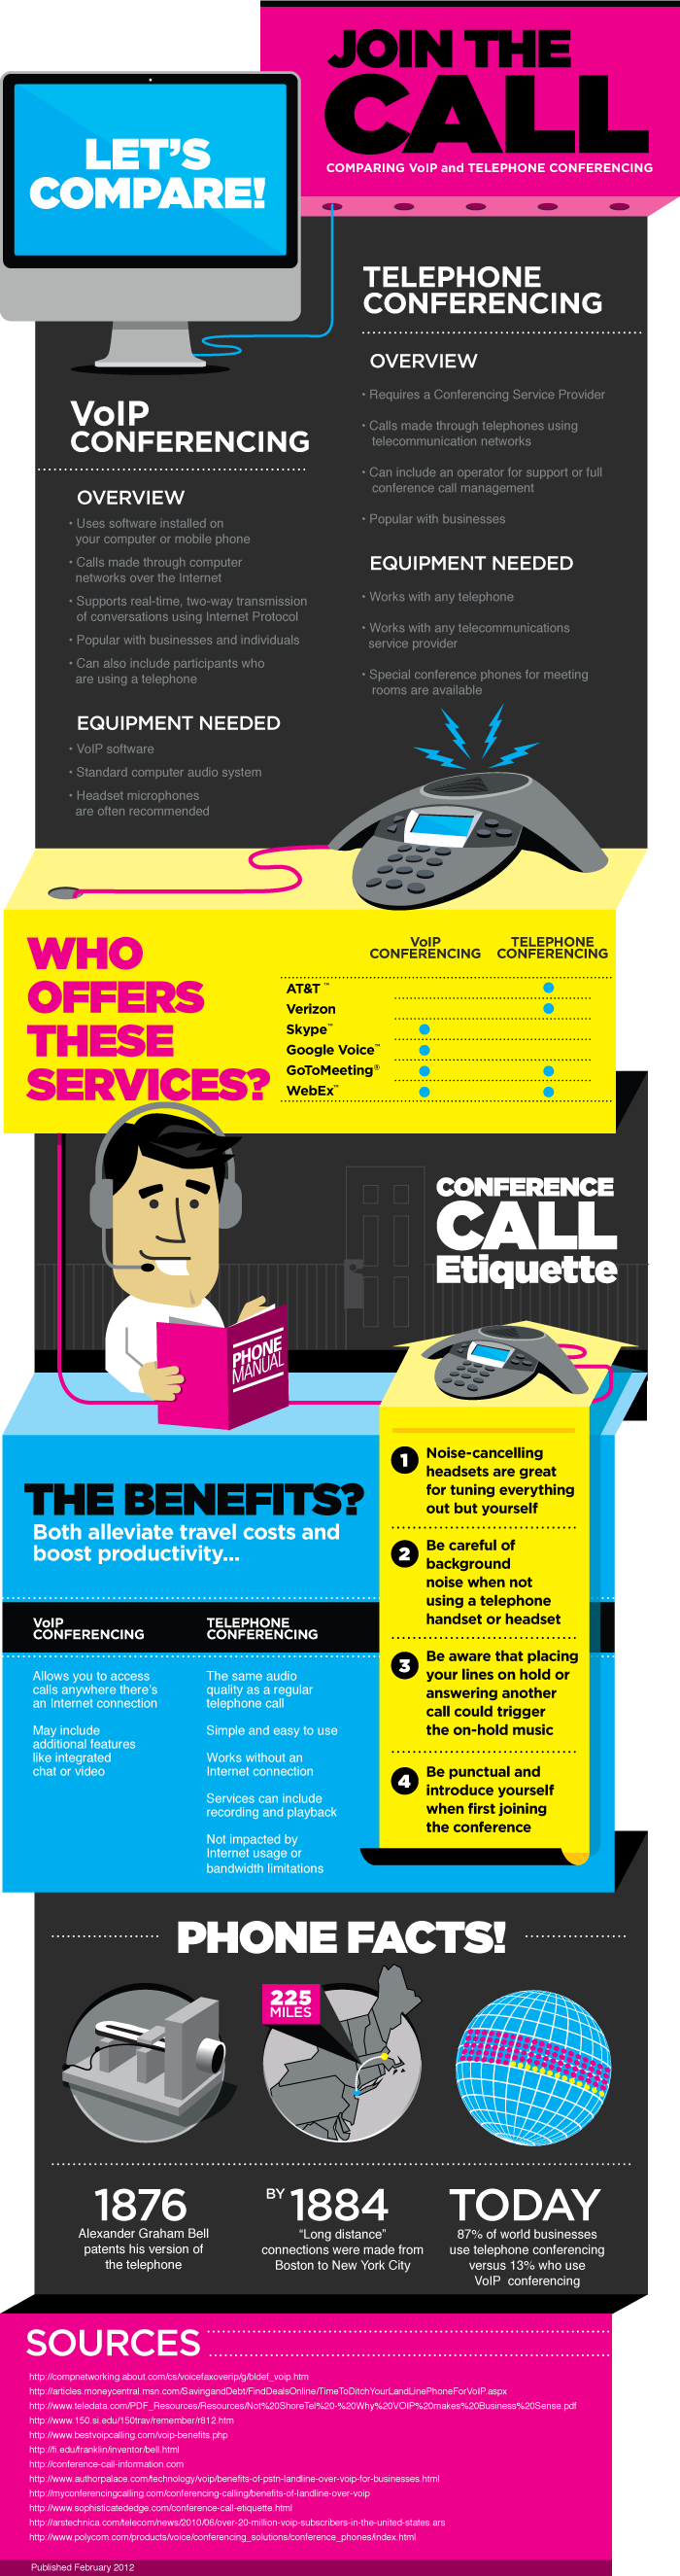 Join the Conference Call Infographic